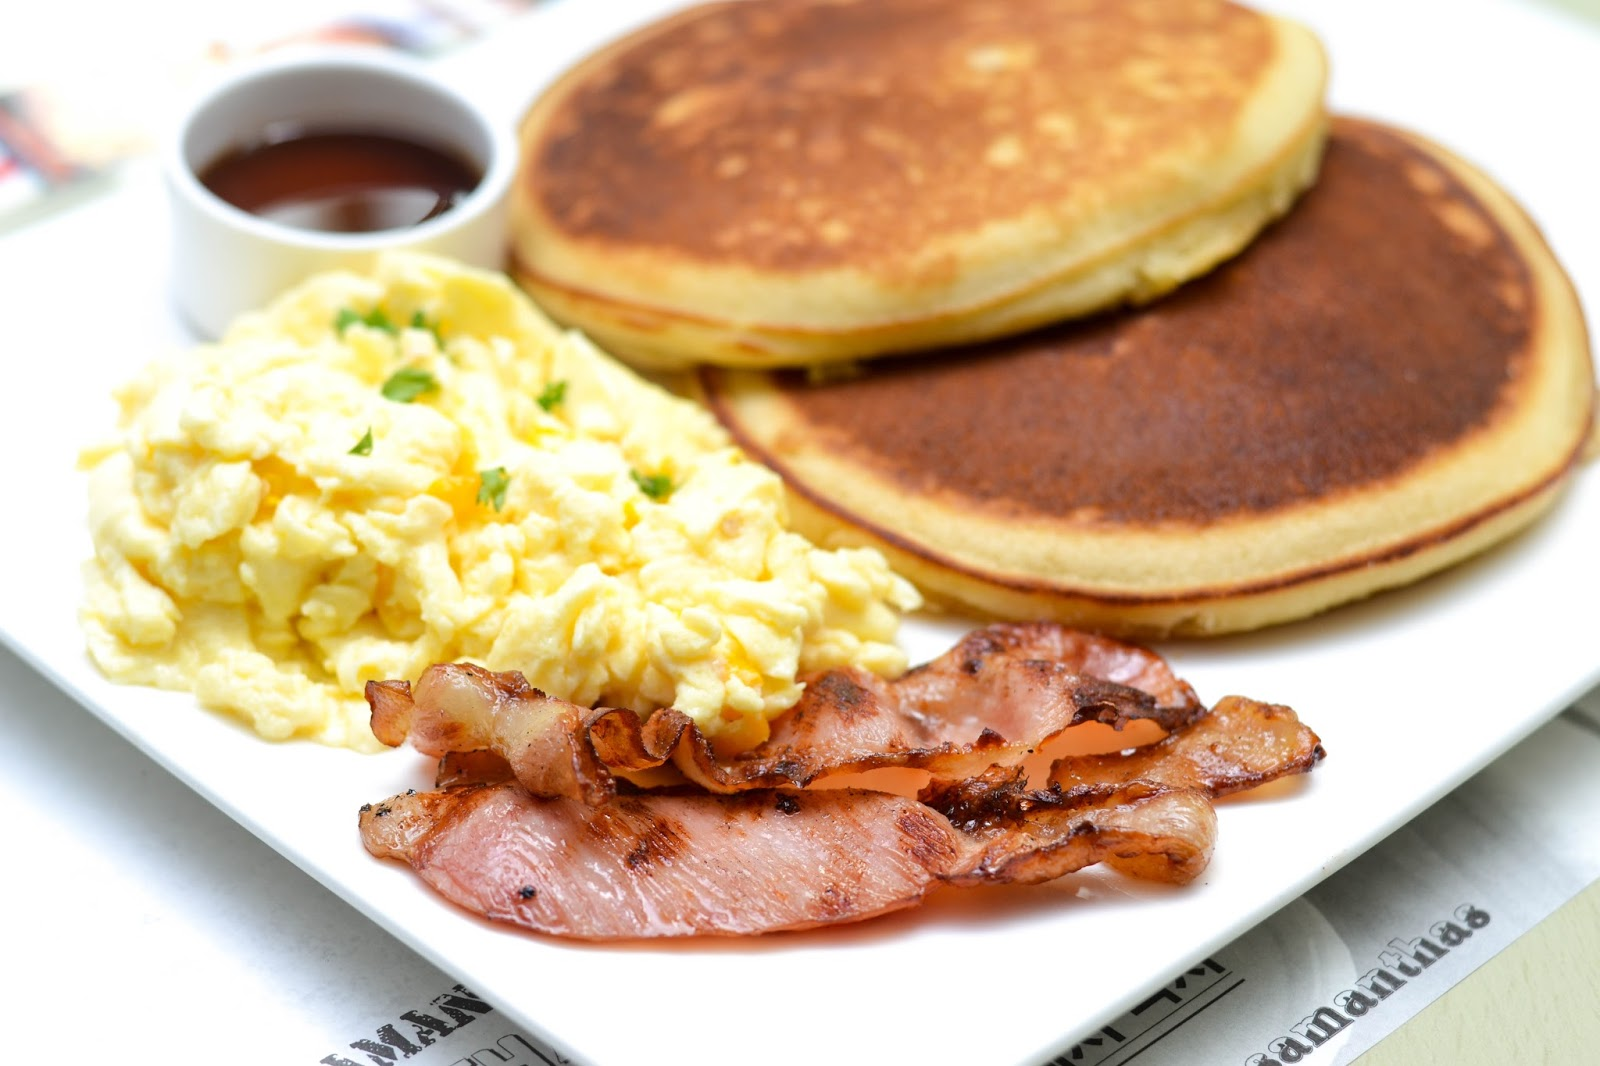 Bacon, Pancakes and Scrambled Eggs